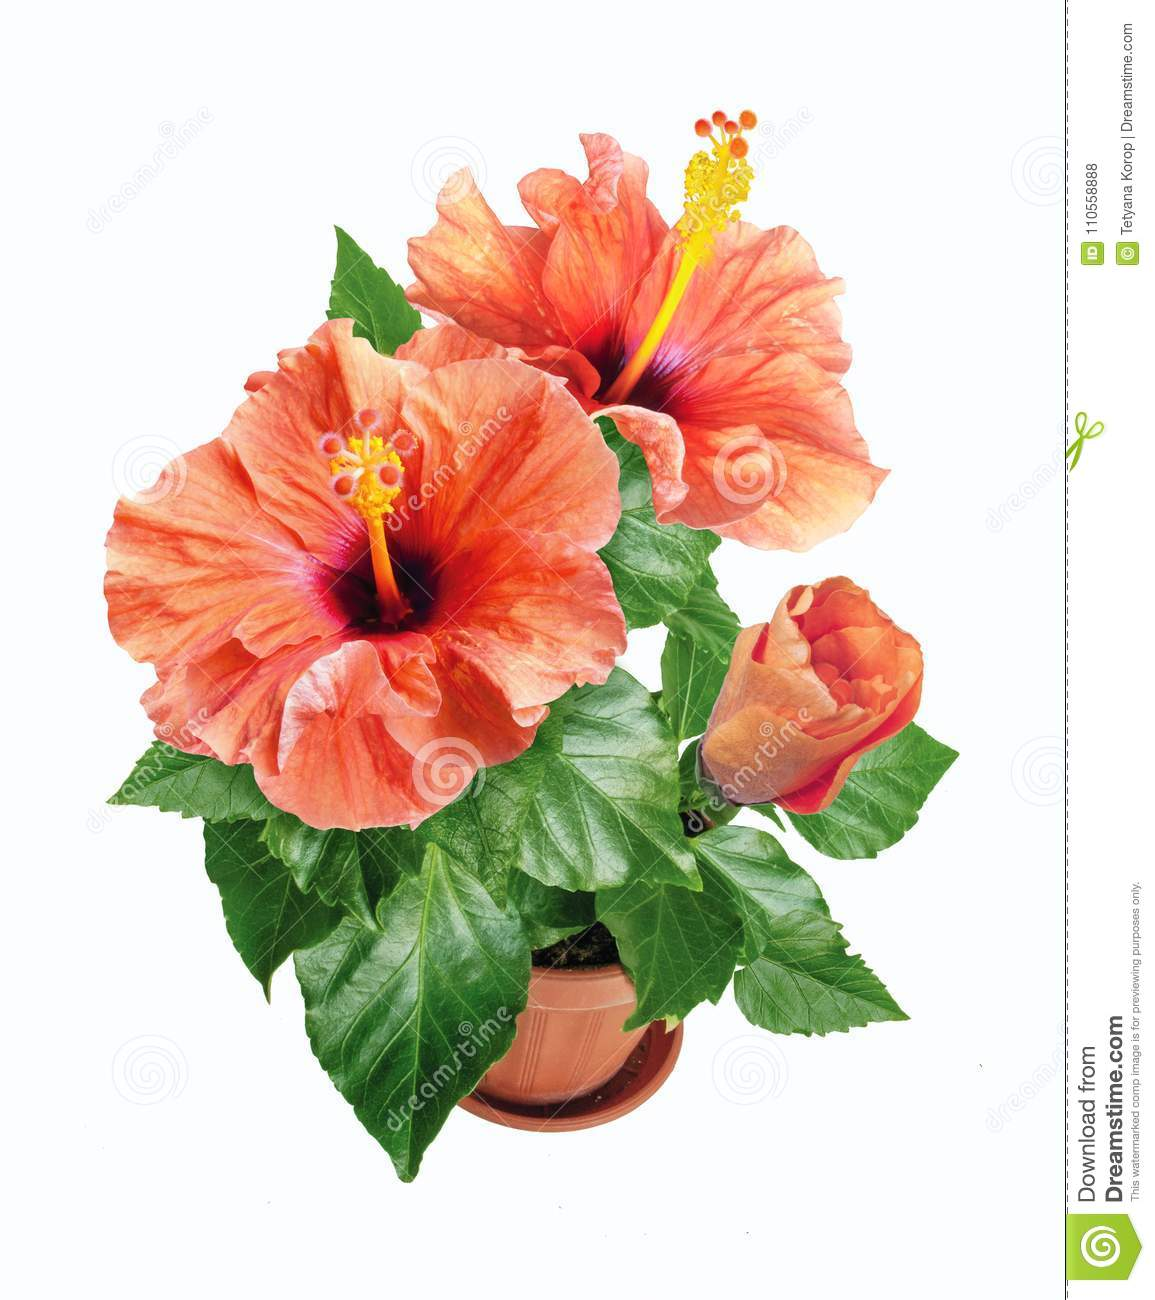 Potted pink hibiscus flowers isolated on white background stock royalty free stock photo izmirmasajfo